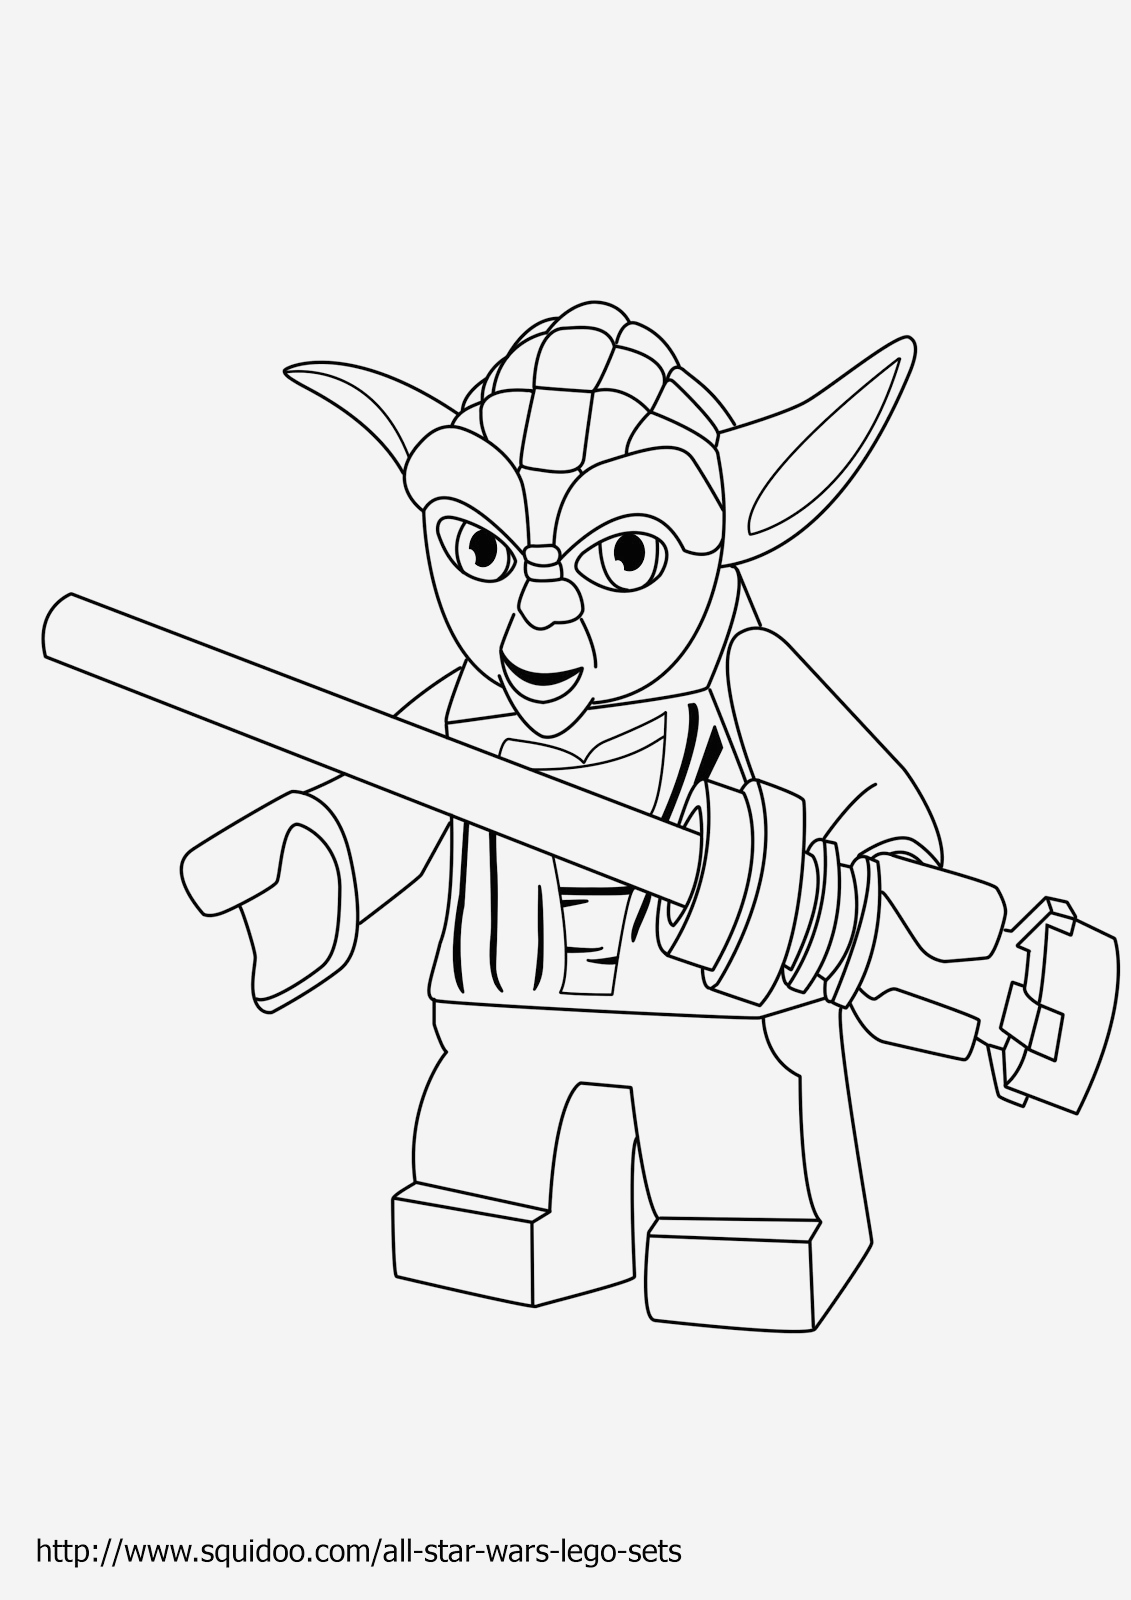 Coloriage Lego Star Wars Luxury Lego Yoda Coloring Pages at Getdrawings Of Coloriage Lego Star Wars